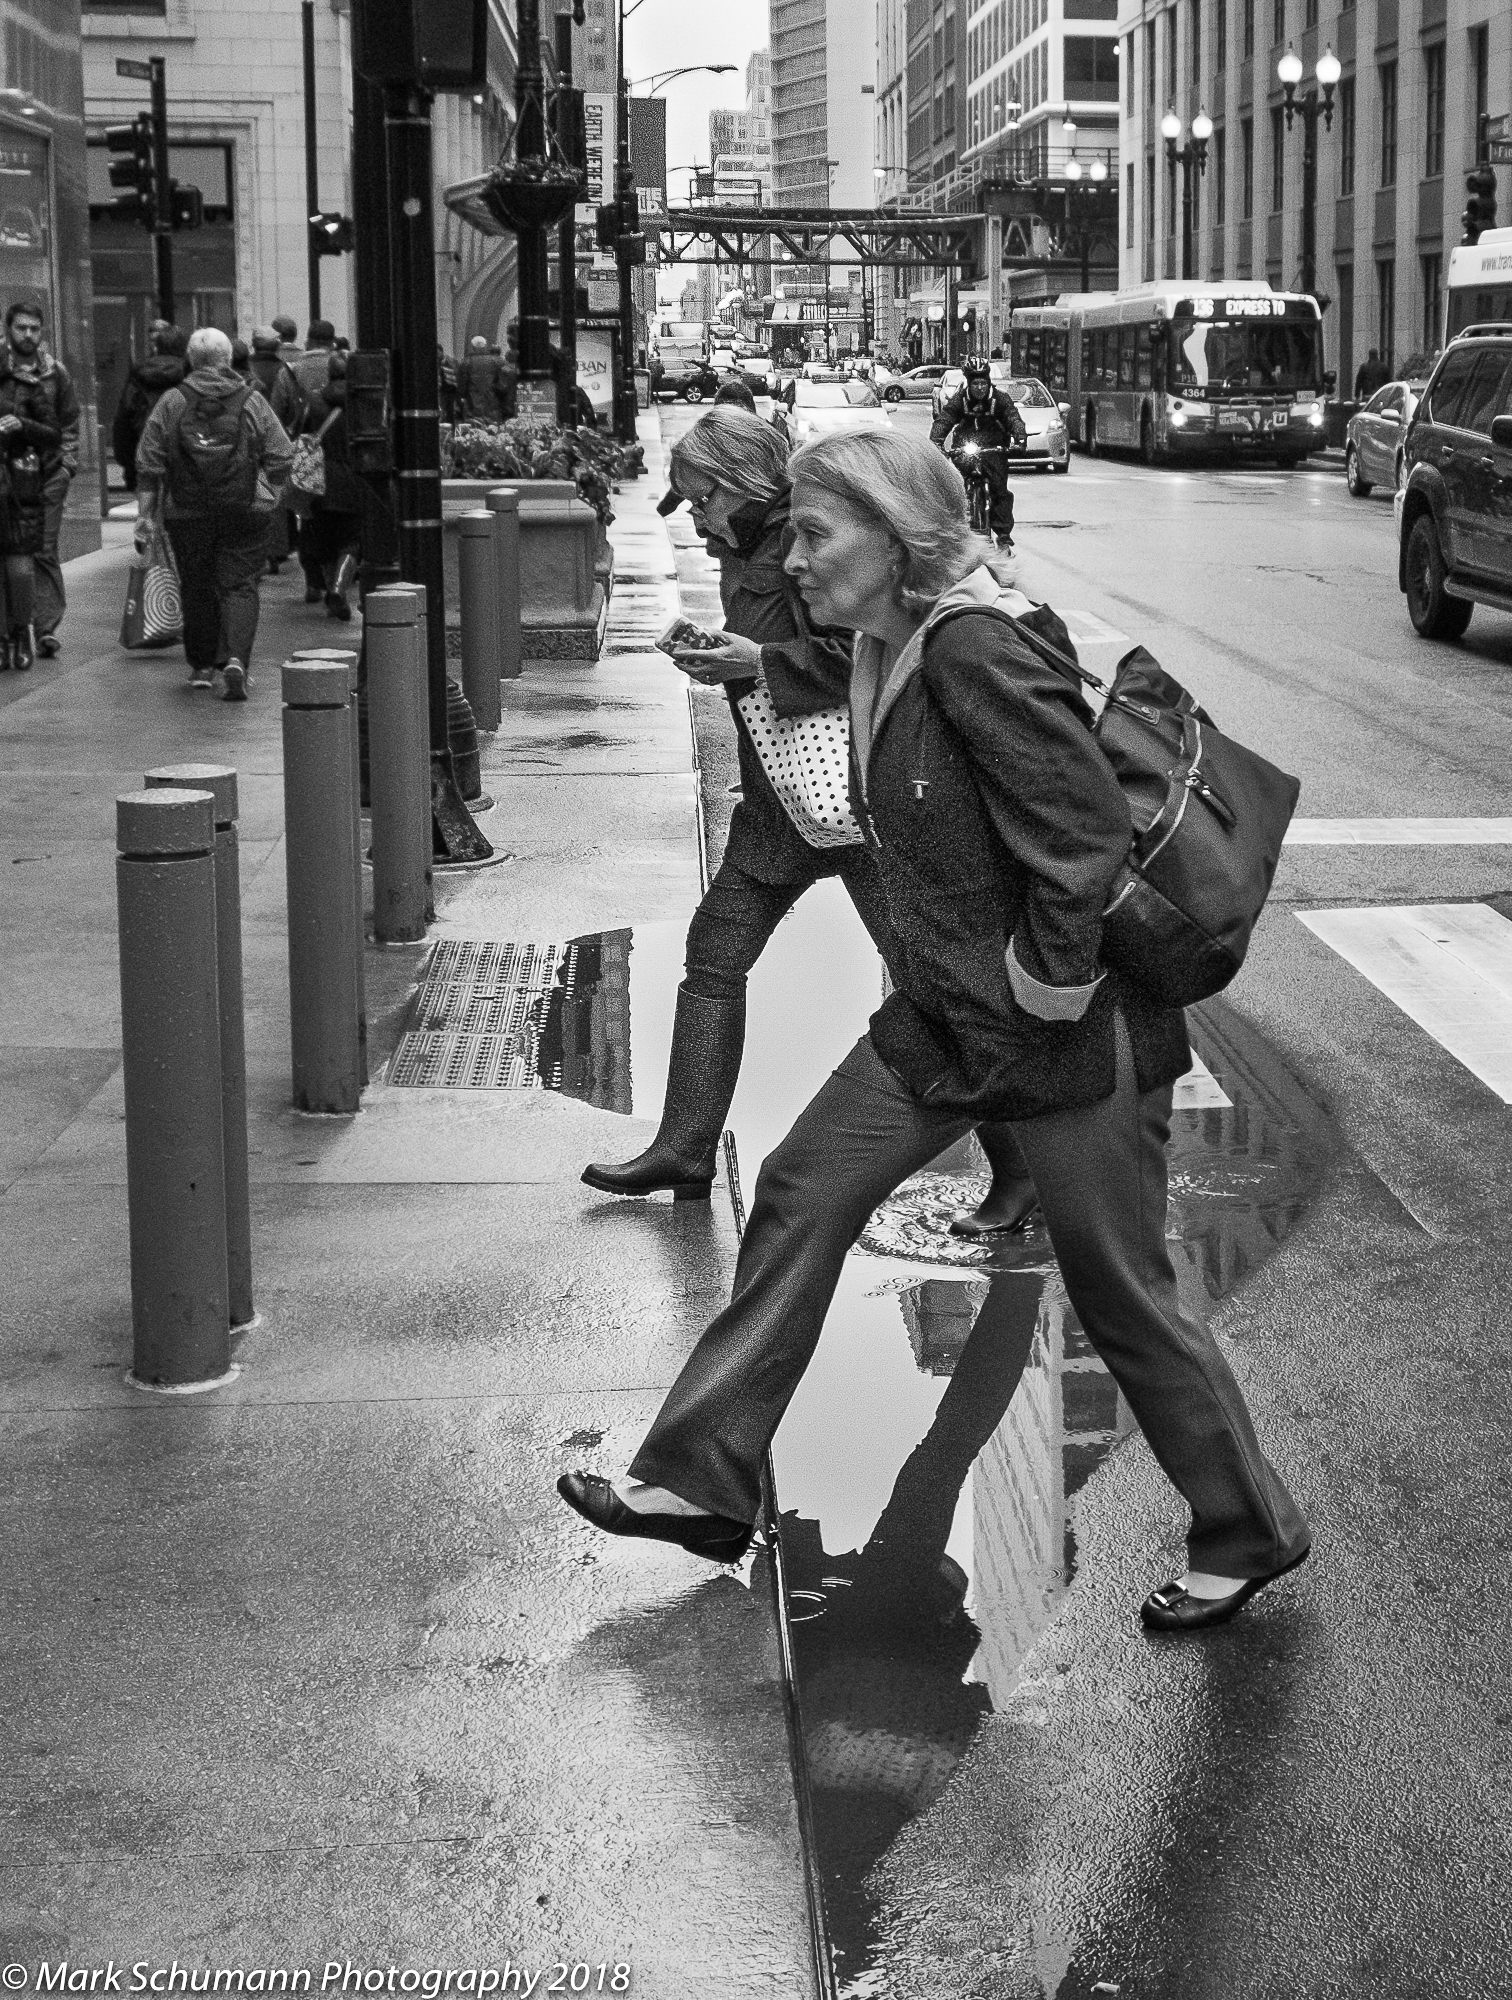 Street Photography_Chicago_Puddle Jumpers_113018.jpg